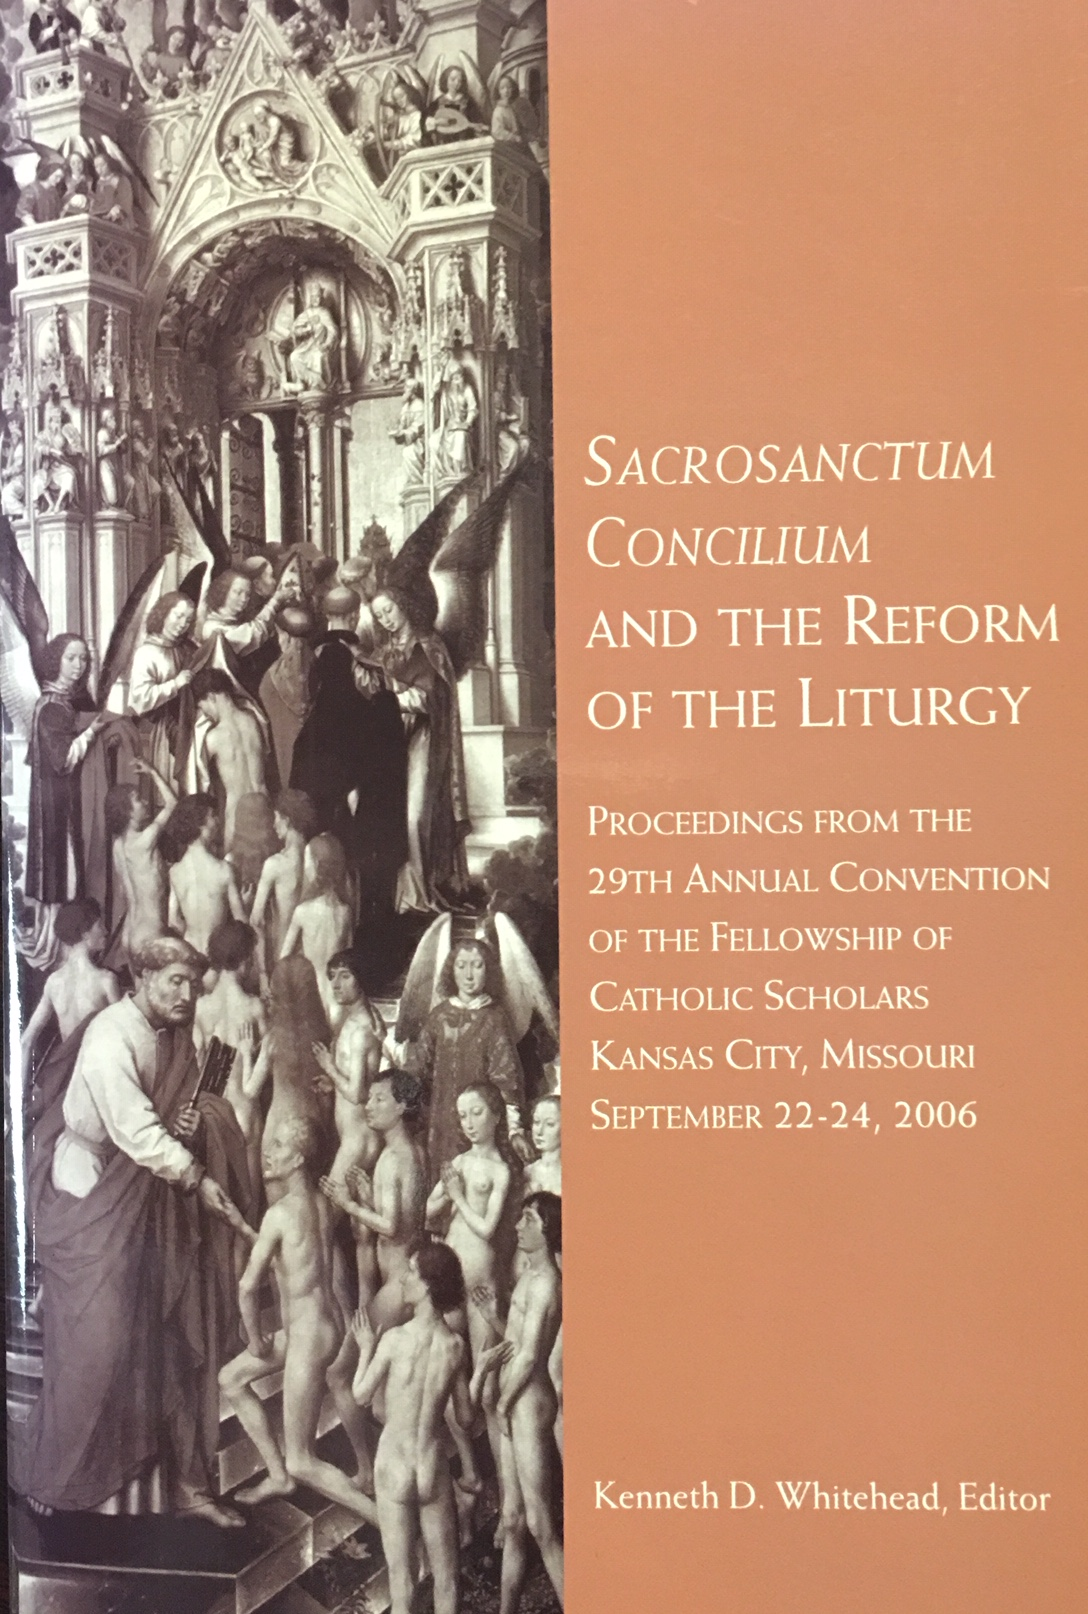 Image for Sacrosanctum Concilium and the Reform of the Liturgy: Proceedings from the 29th Annual Convention of the Fellowship of Catholic Scholars, Kansas City, Missouri, September 22-24, 2006